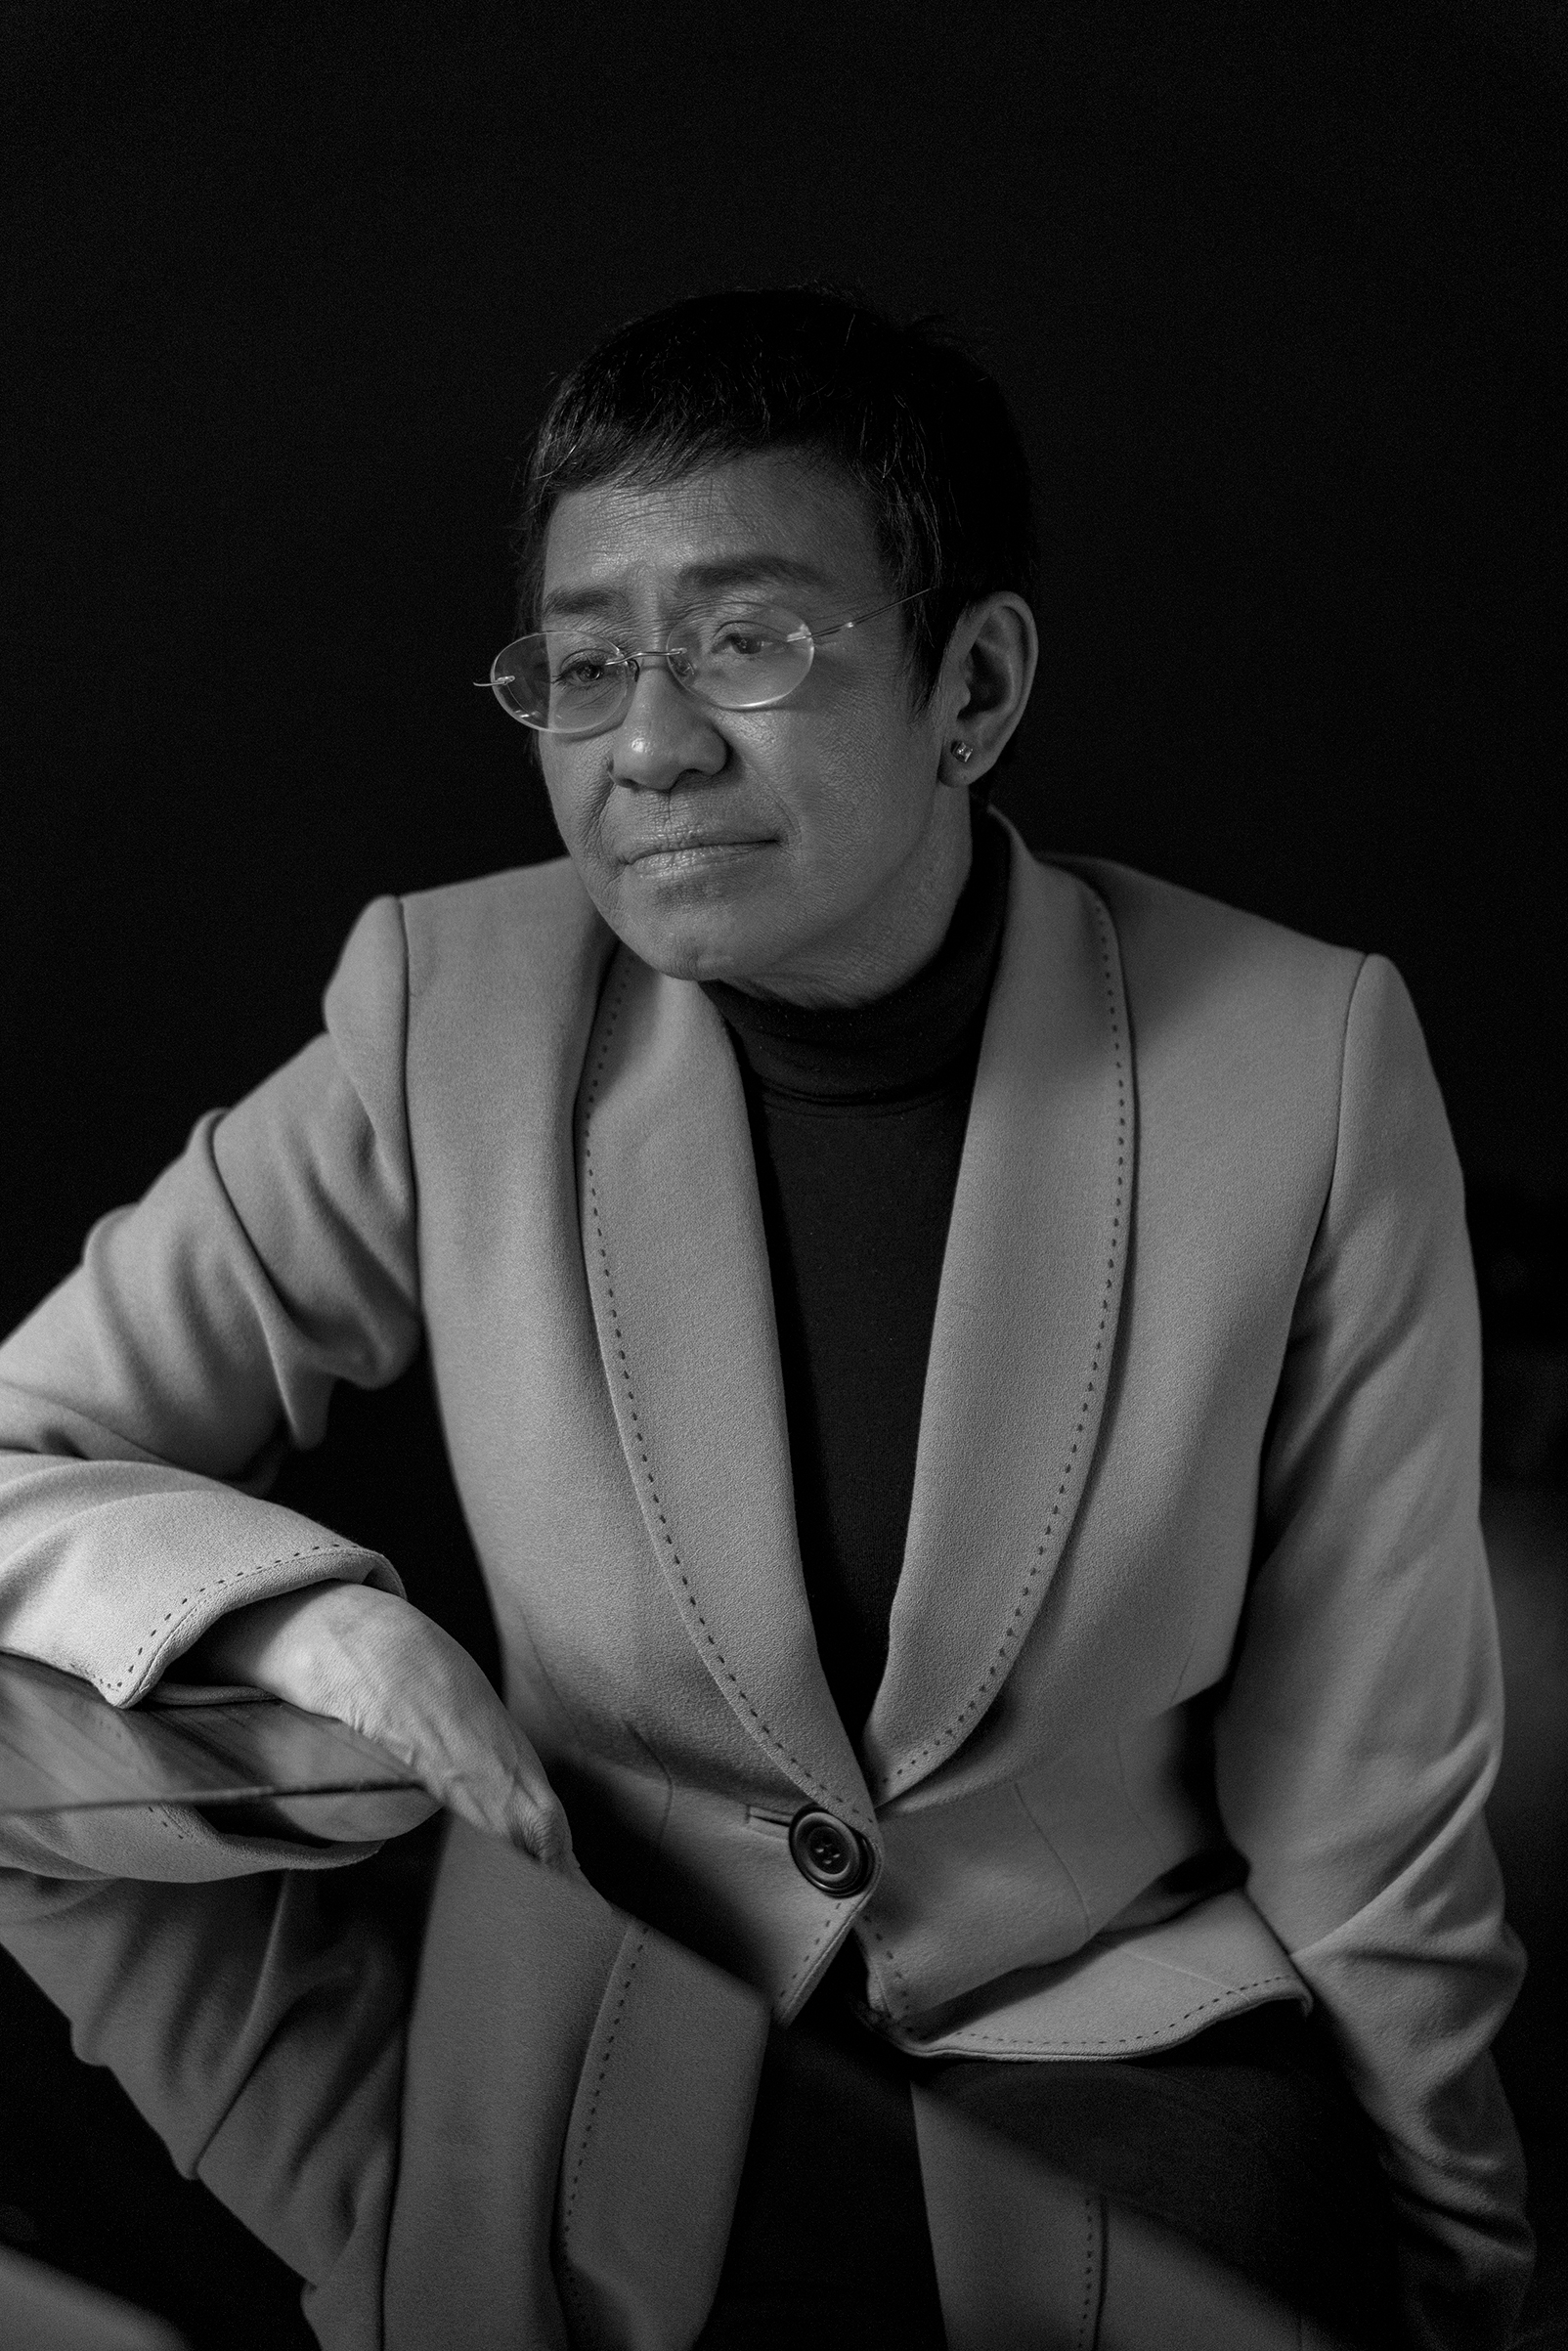 Maria Ressa co-founded the news site Rappler. It has relentlessly covered the brutal drug war of Philippine President Rodrigo Duterte, including suspected extrajudicial killings that have alarmed human-rights advocates.